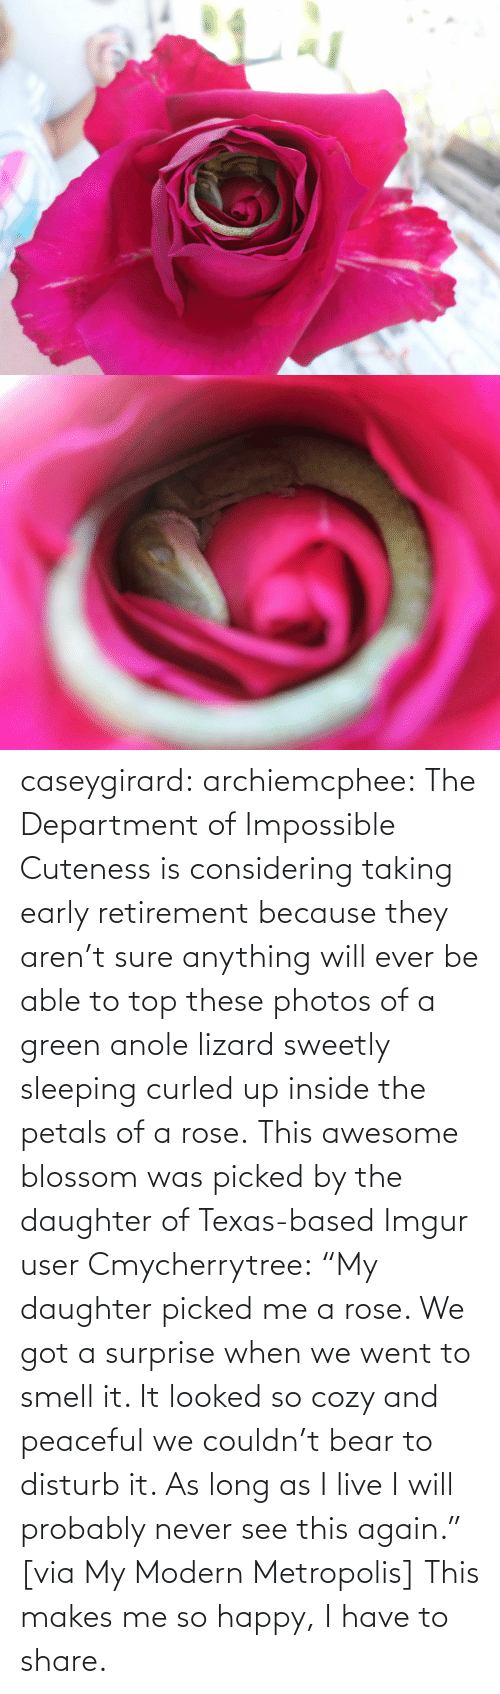 "Smell, Tumblr, and Wikipedia: caseygirard:  archiemcphee:   The Department of Impossible Cuteness is considering taking early retirement because they aren't sure anything will ever be able to top these photos of a green anole lizard sweetly sleeping curled up inside the petals of a rose. This awesome blossom was picked by the daughter of Texas-based Imgur user Cmycherrytree: ""My daughter picked me a rose. We got a surprise when we went to smell it. It looked so cozy and peaceful we couldn't bear to disturb it. As long as I live I will probably never see this again."" [via My Modern Metropolis]   This makes me so happy, I have to share."